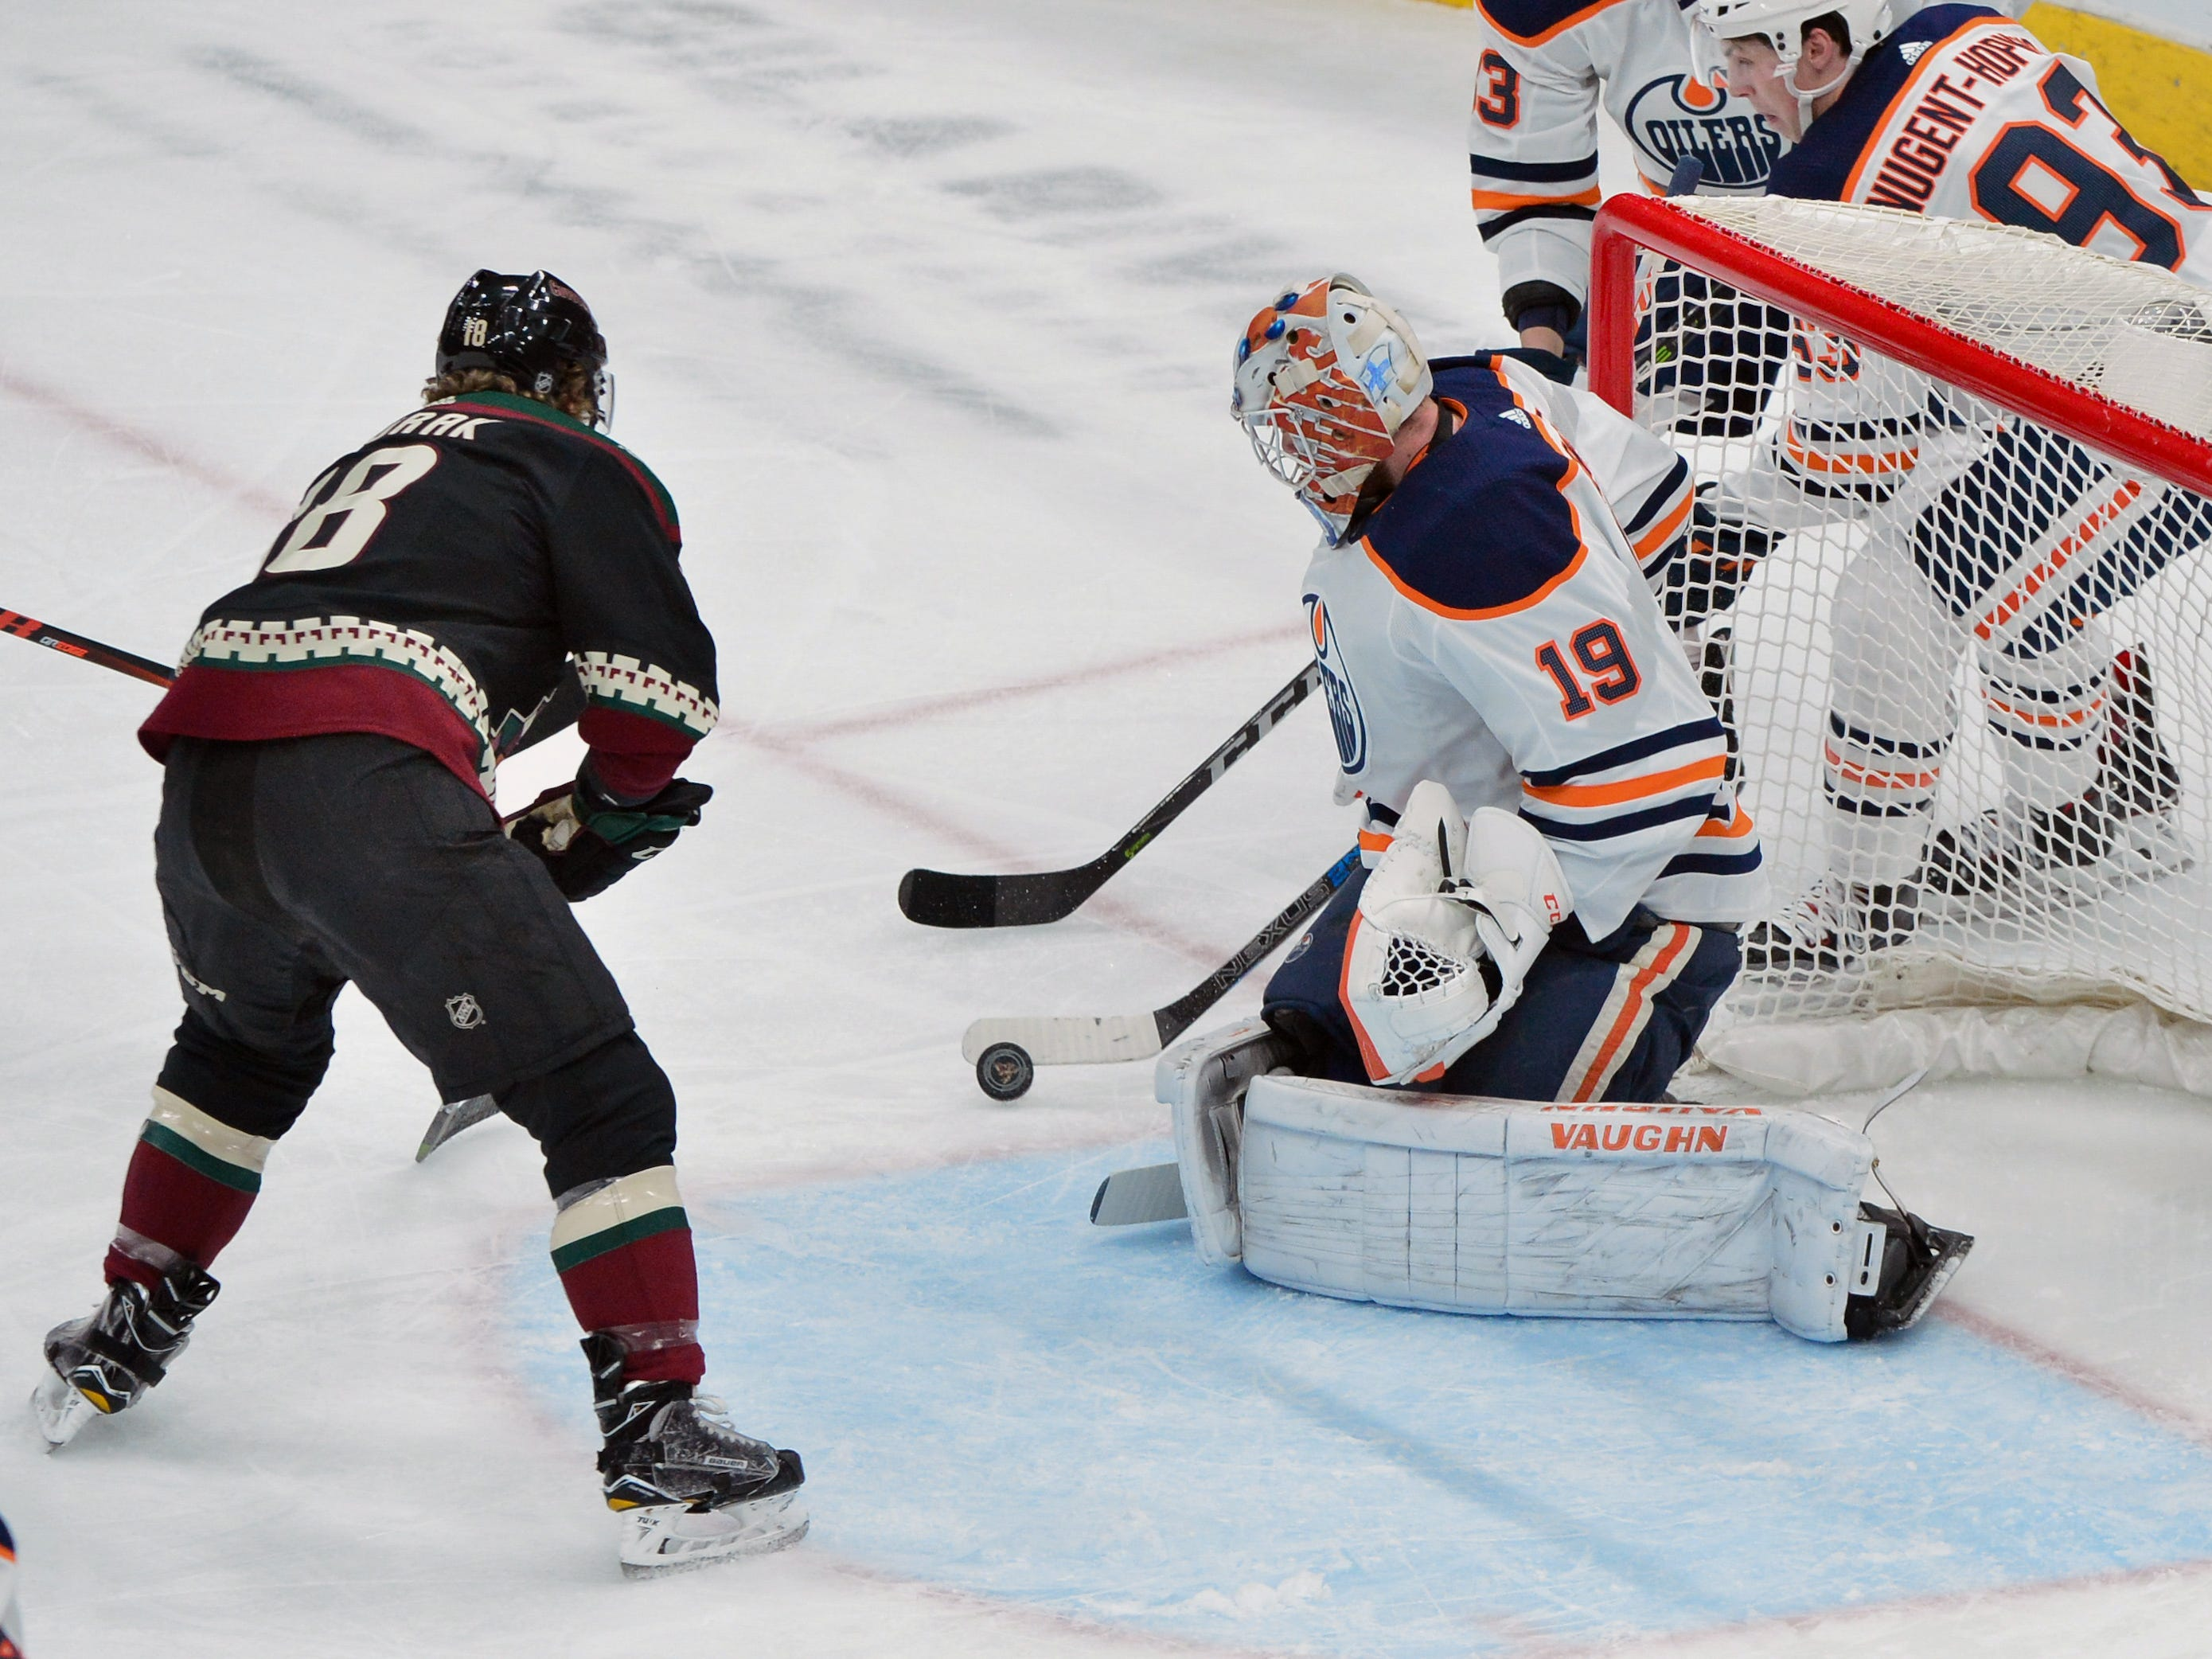 Mar 16, 2019; Glendale, AZ, USA; Edmonton Oilers goaltender Mikko Koskinen (19) makes a save against Arizona Coyotes center Christian Dvorak (18) during the first period at Gila River Arena.